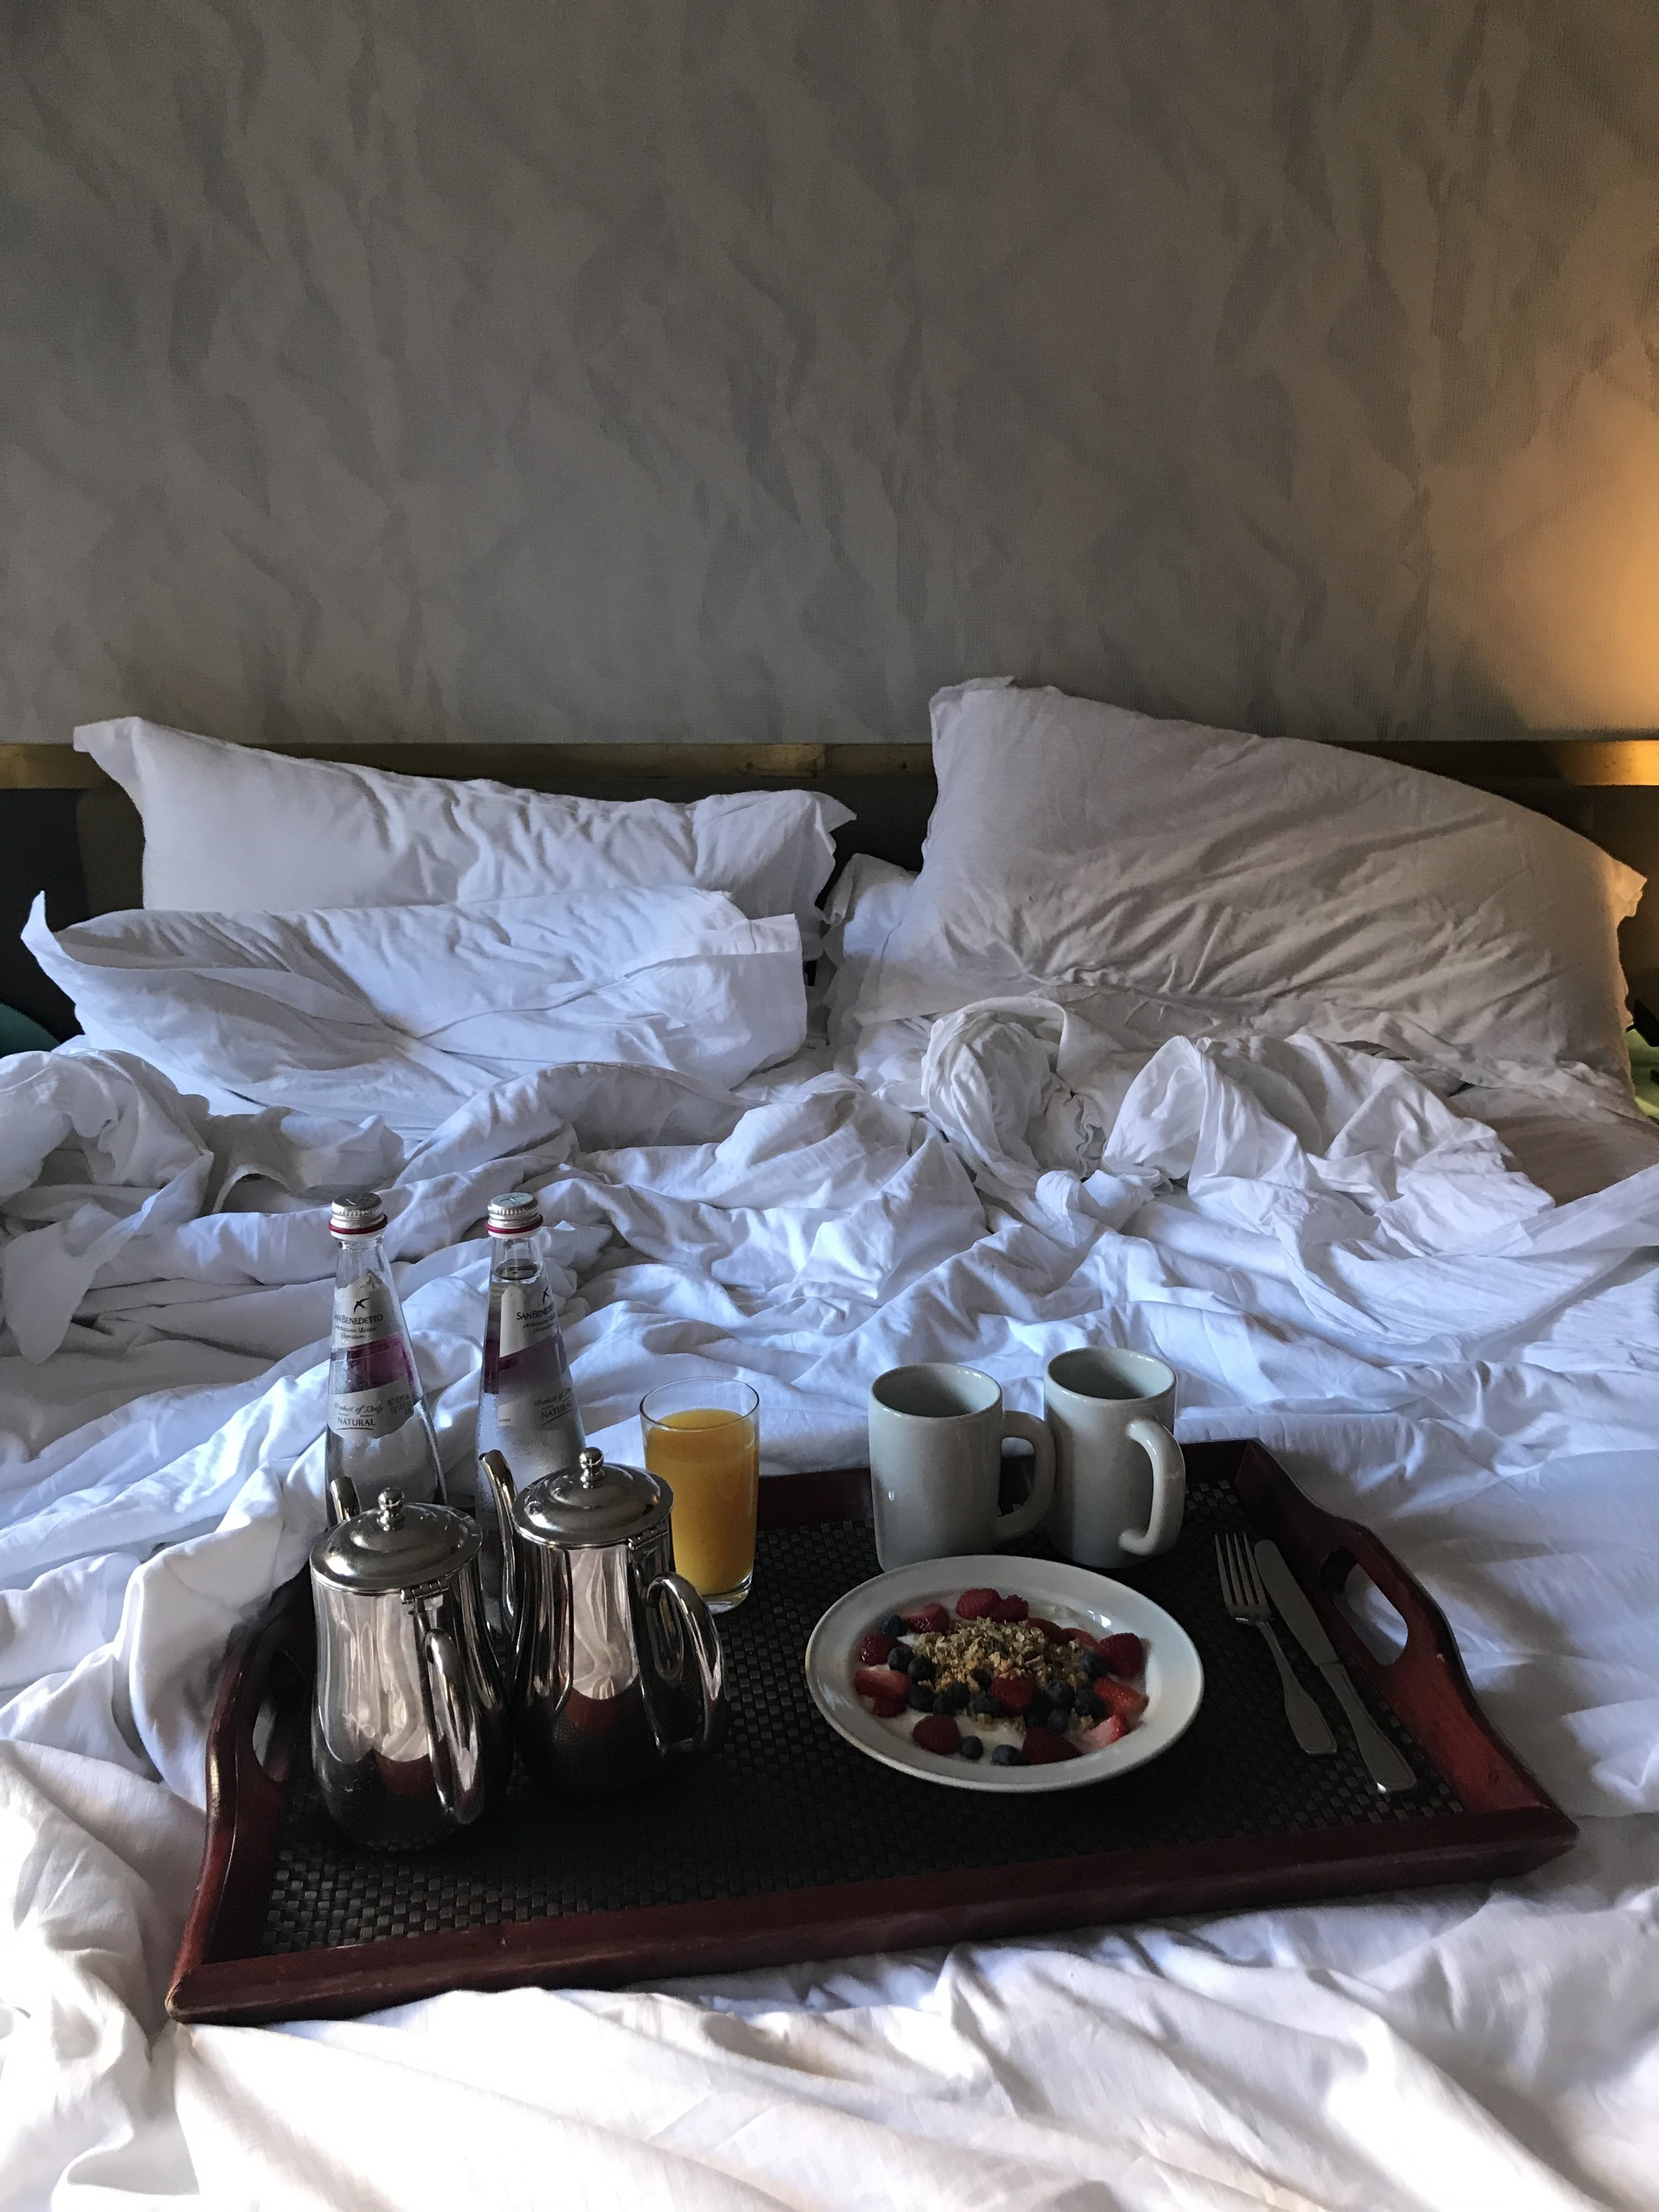 The Time Breakfast in Bed.JPG